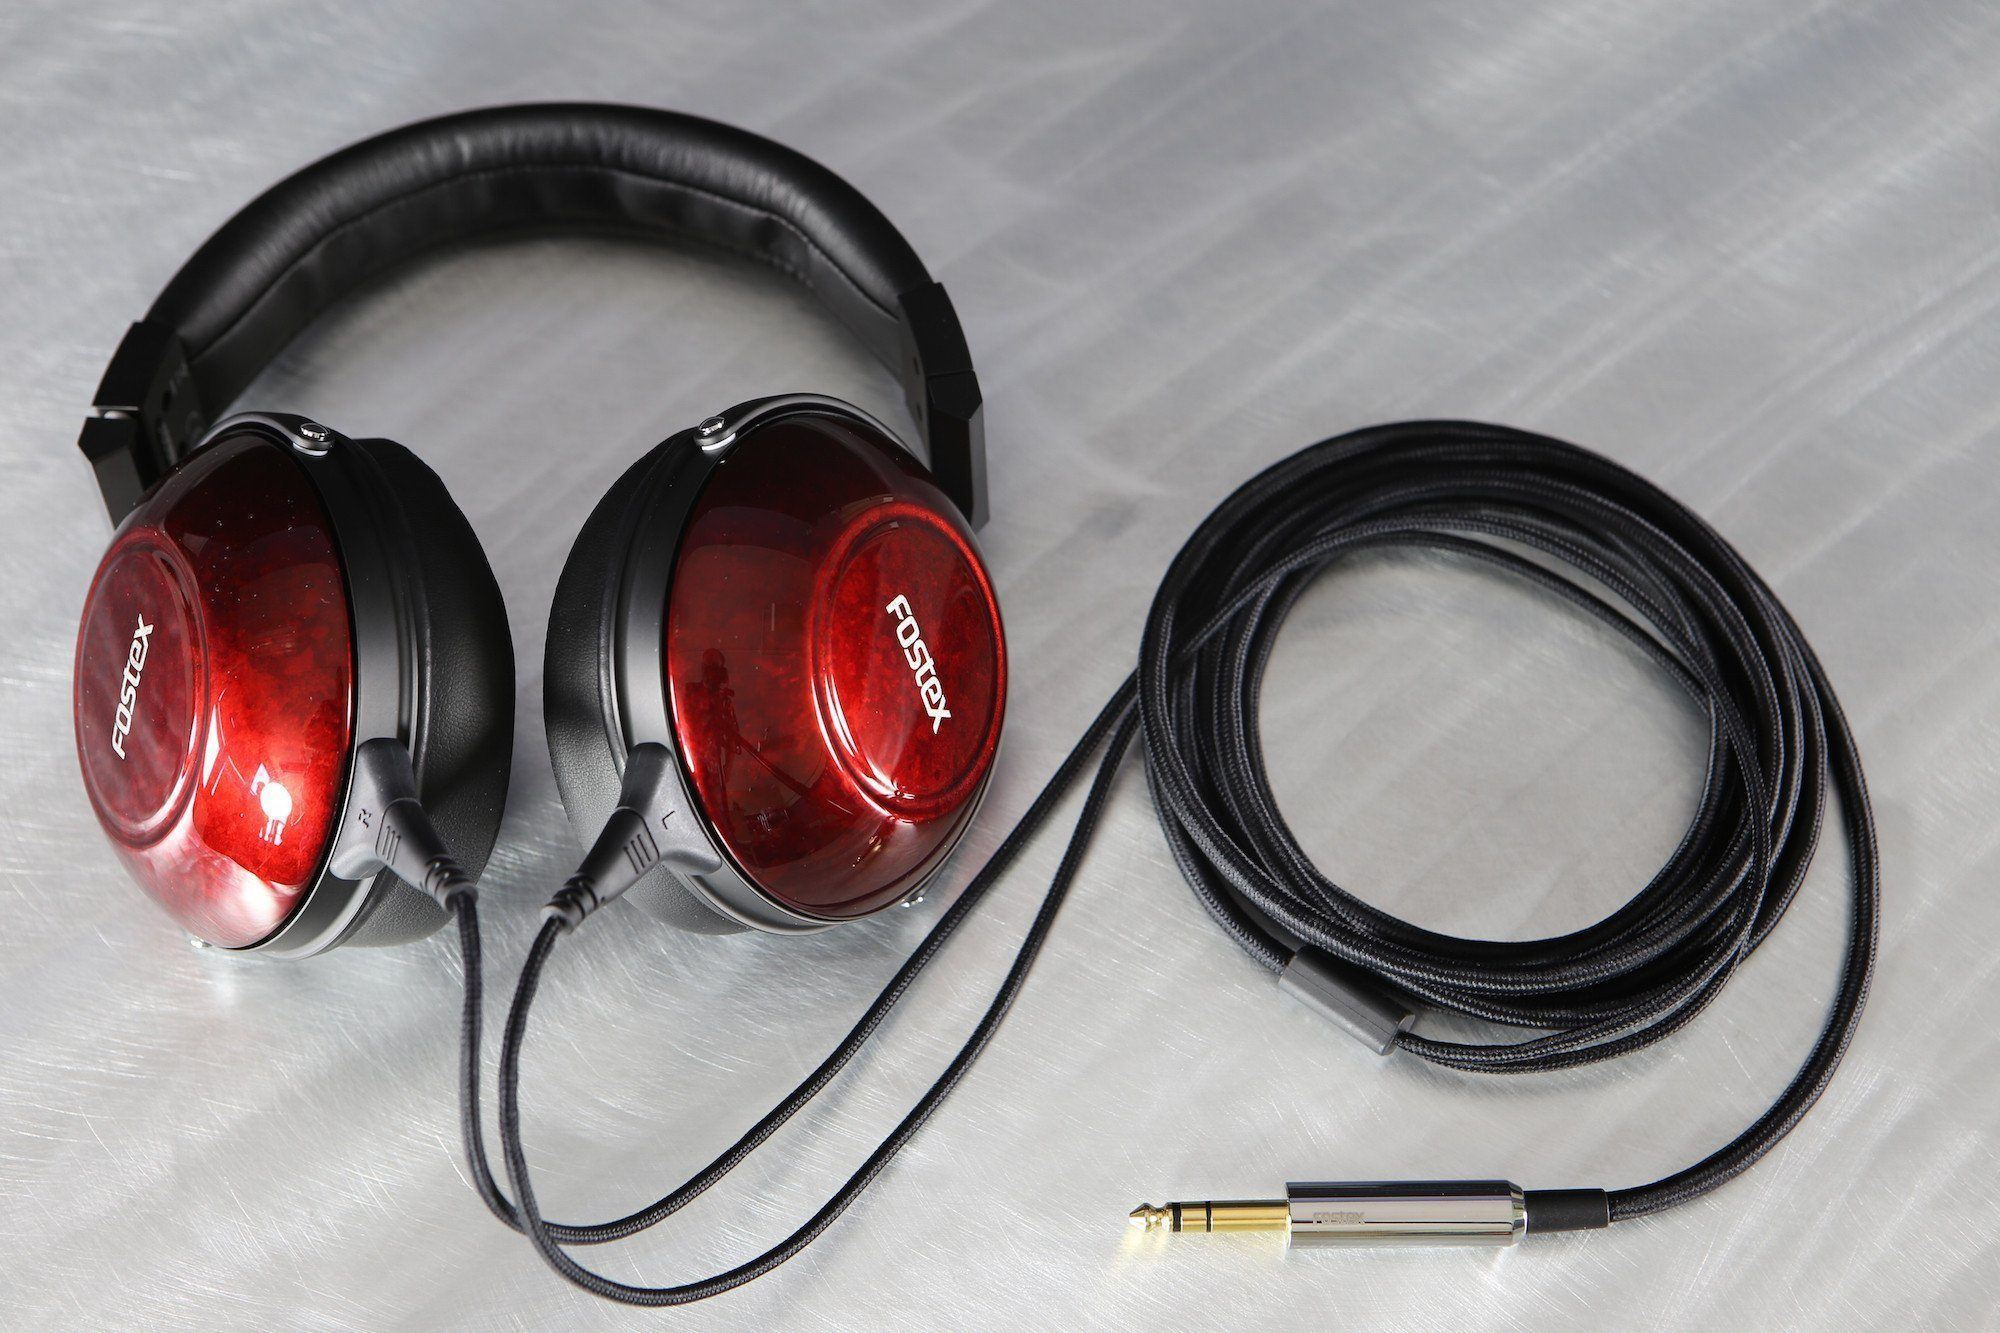 Fostex TH-900 MKII Headphone Review